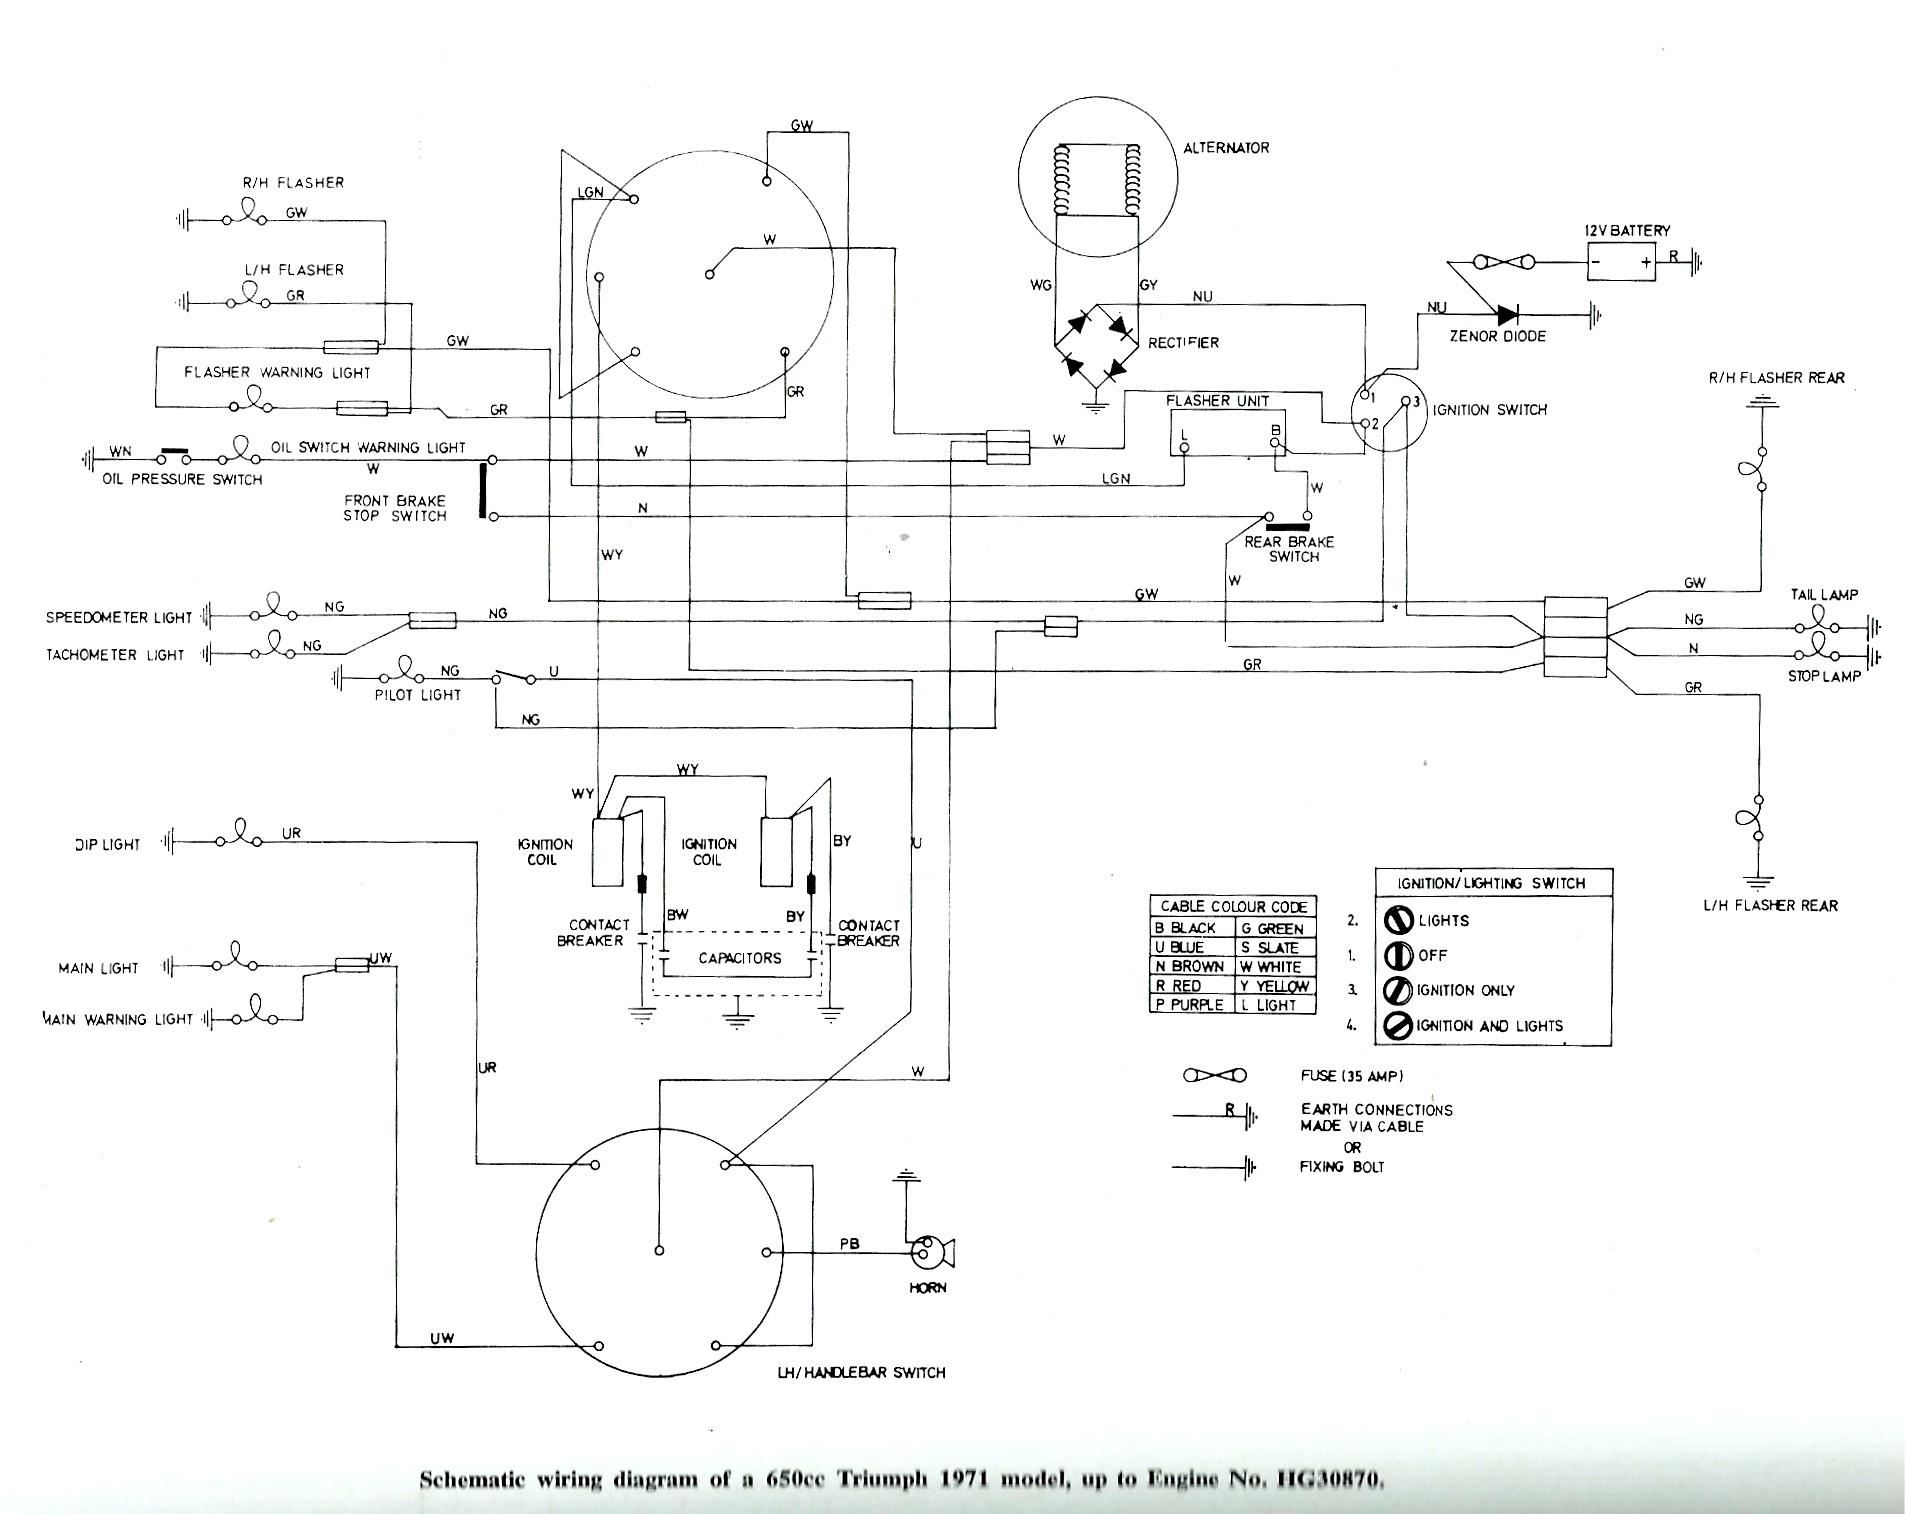 Triumph Bonneville Wiring Diagram Great Design Of Thruxton 500 1973 1972 T120